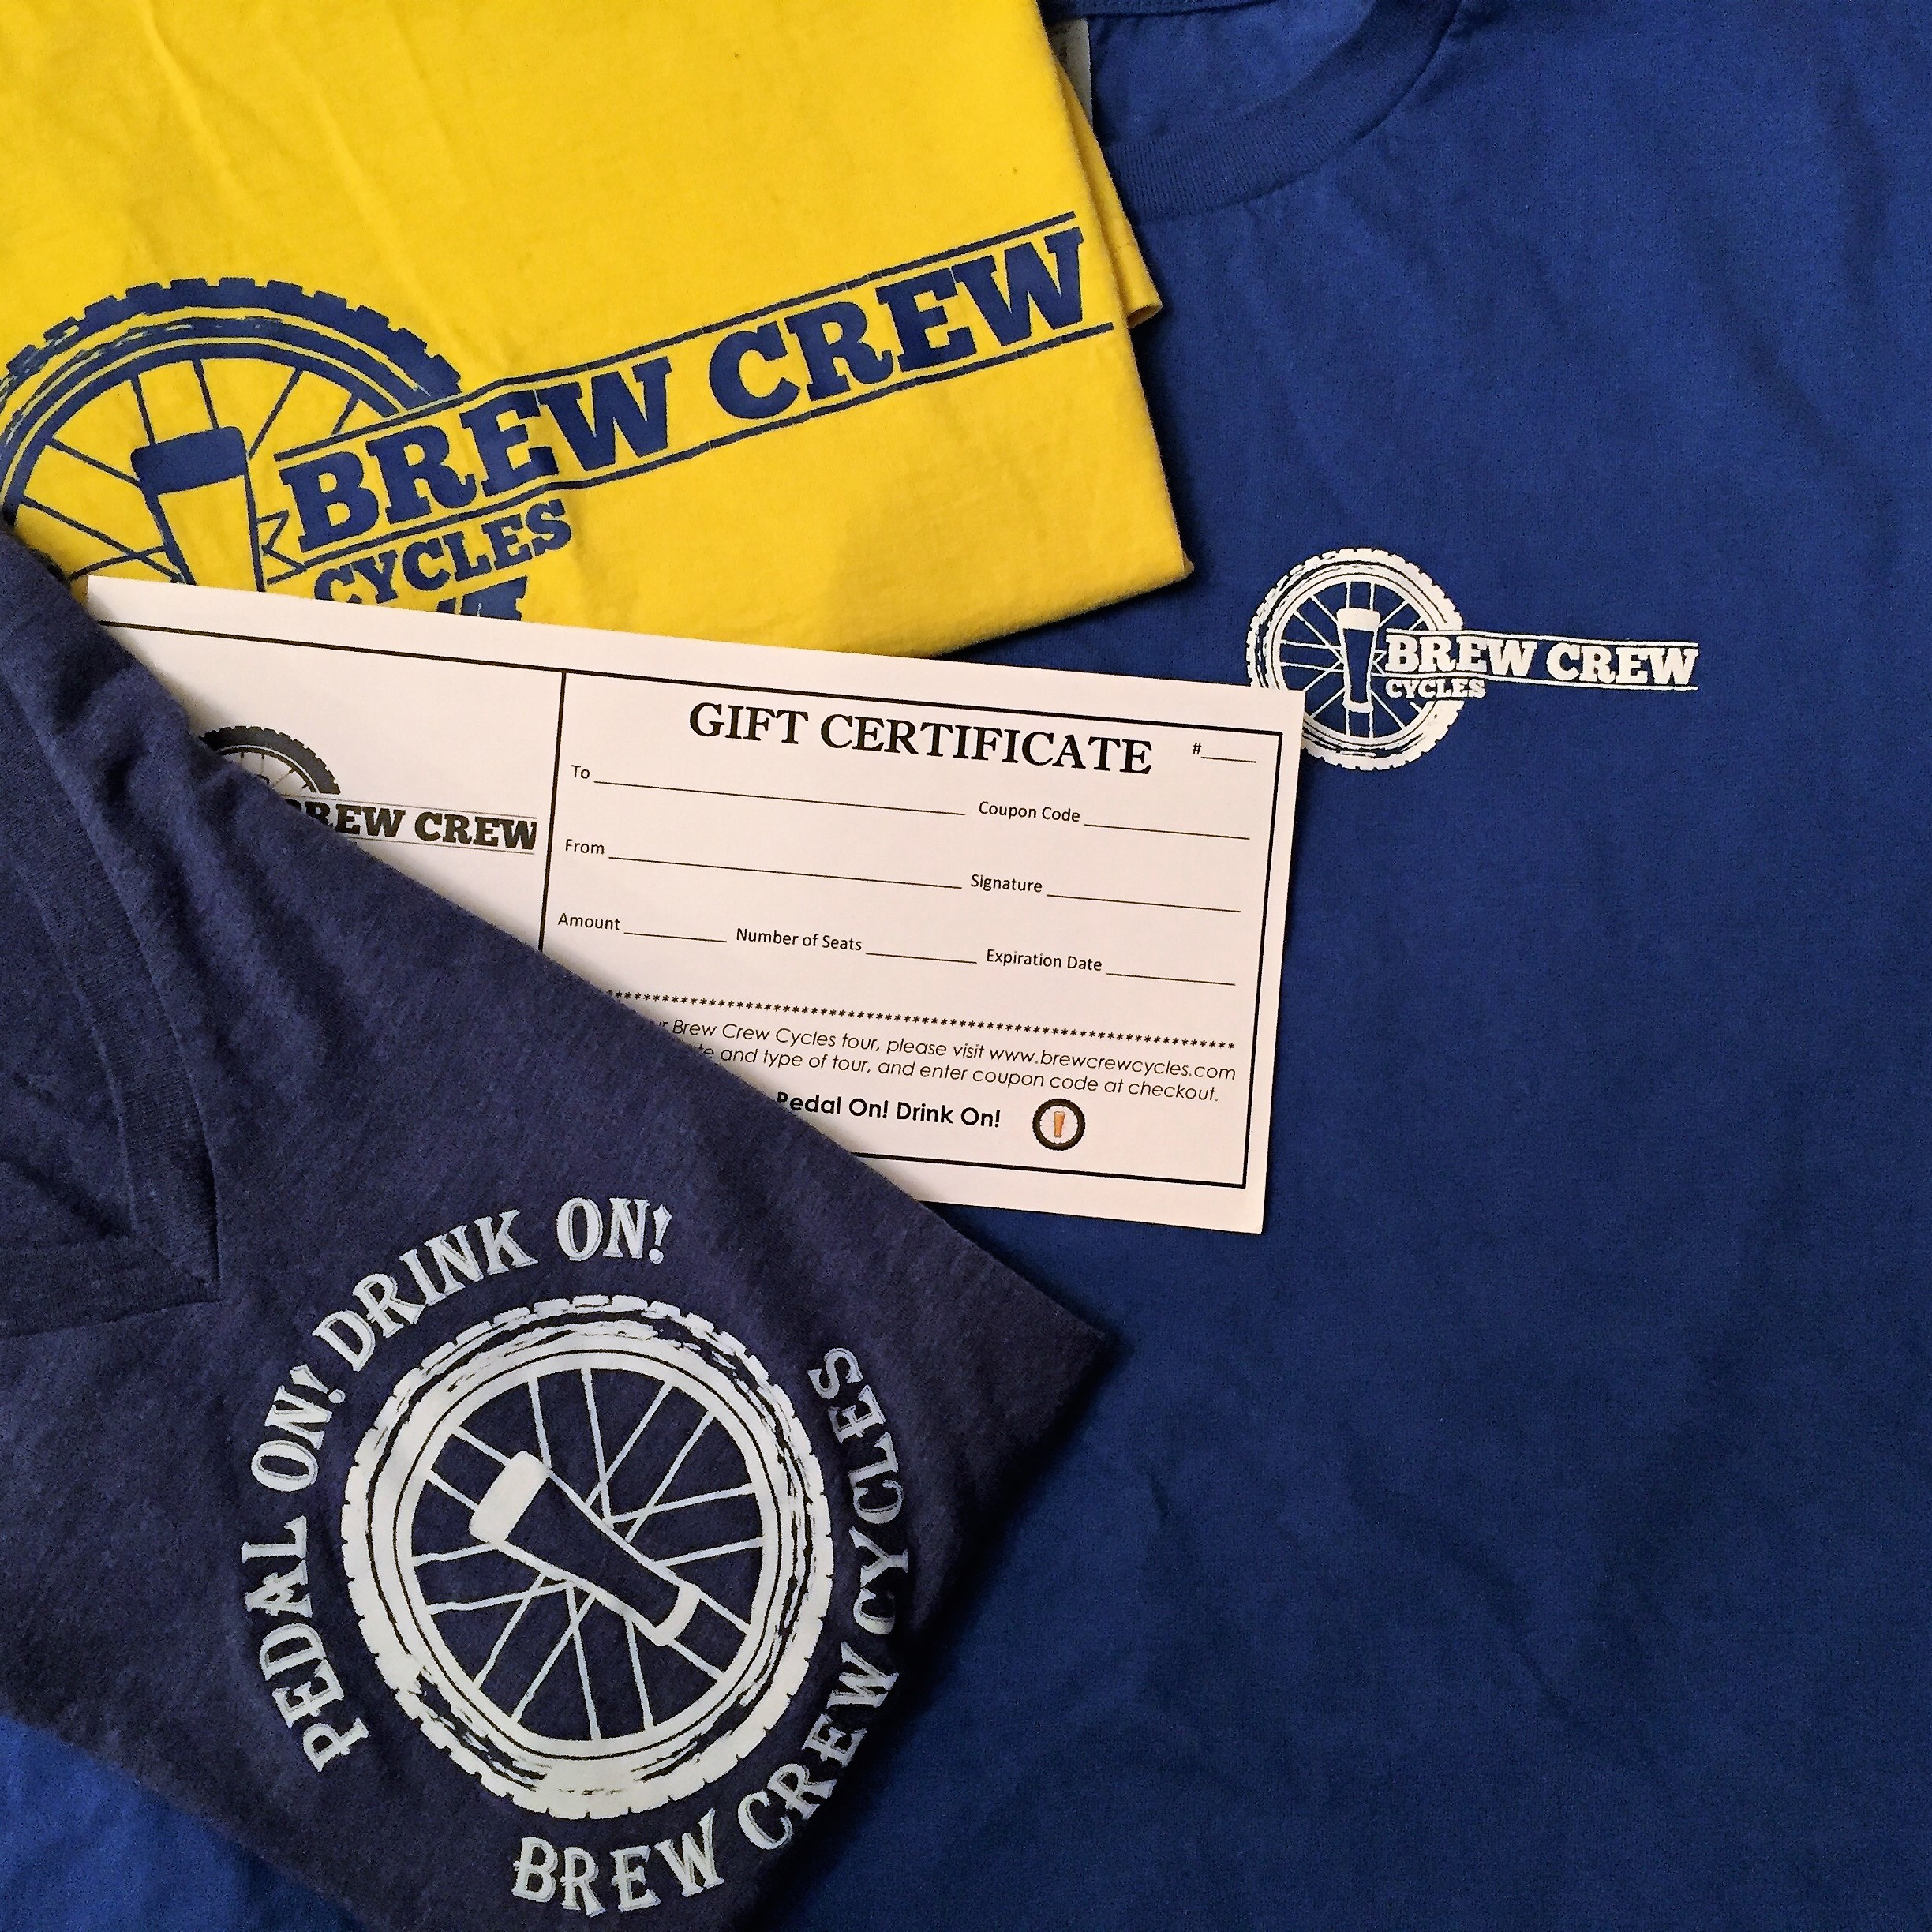 T-Shirt Package for Two: $110 - Two reservations on Brew Crew Cycles tour and two t-shirts is the perfect gift for any craft beer lovers!